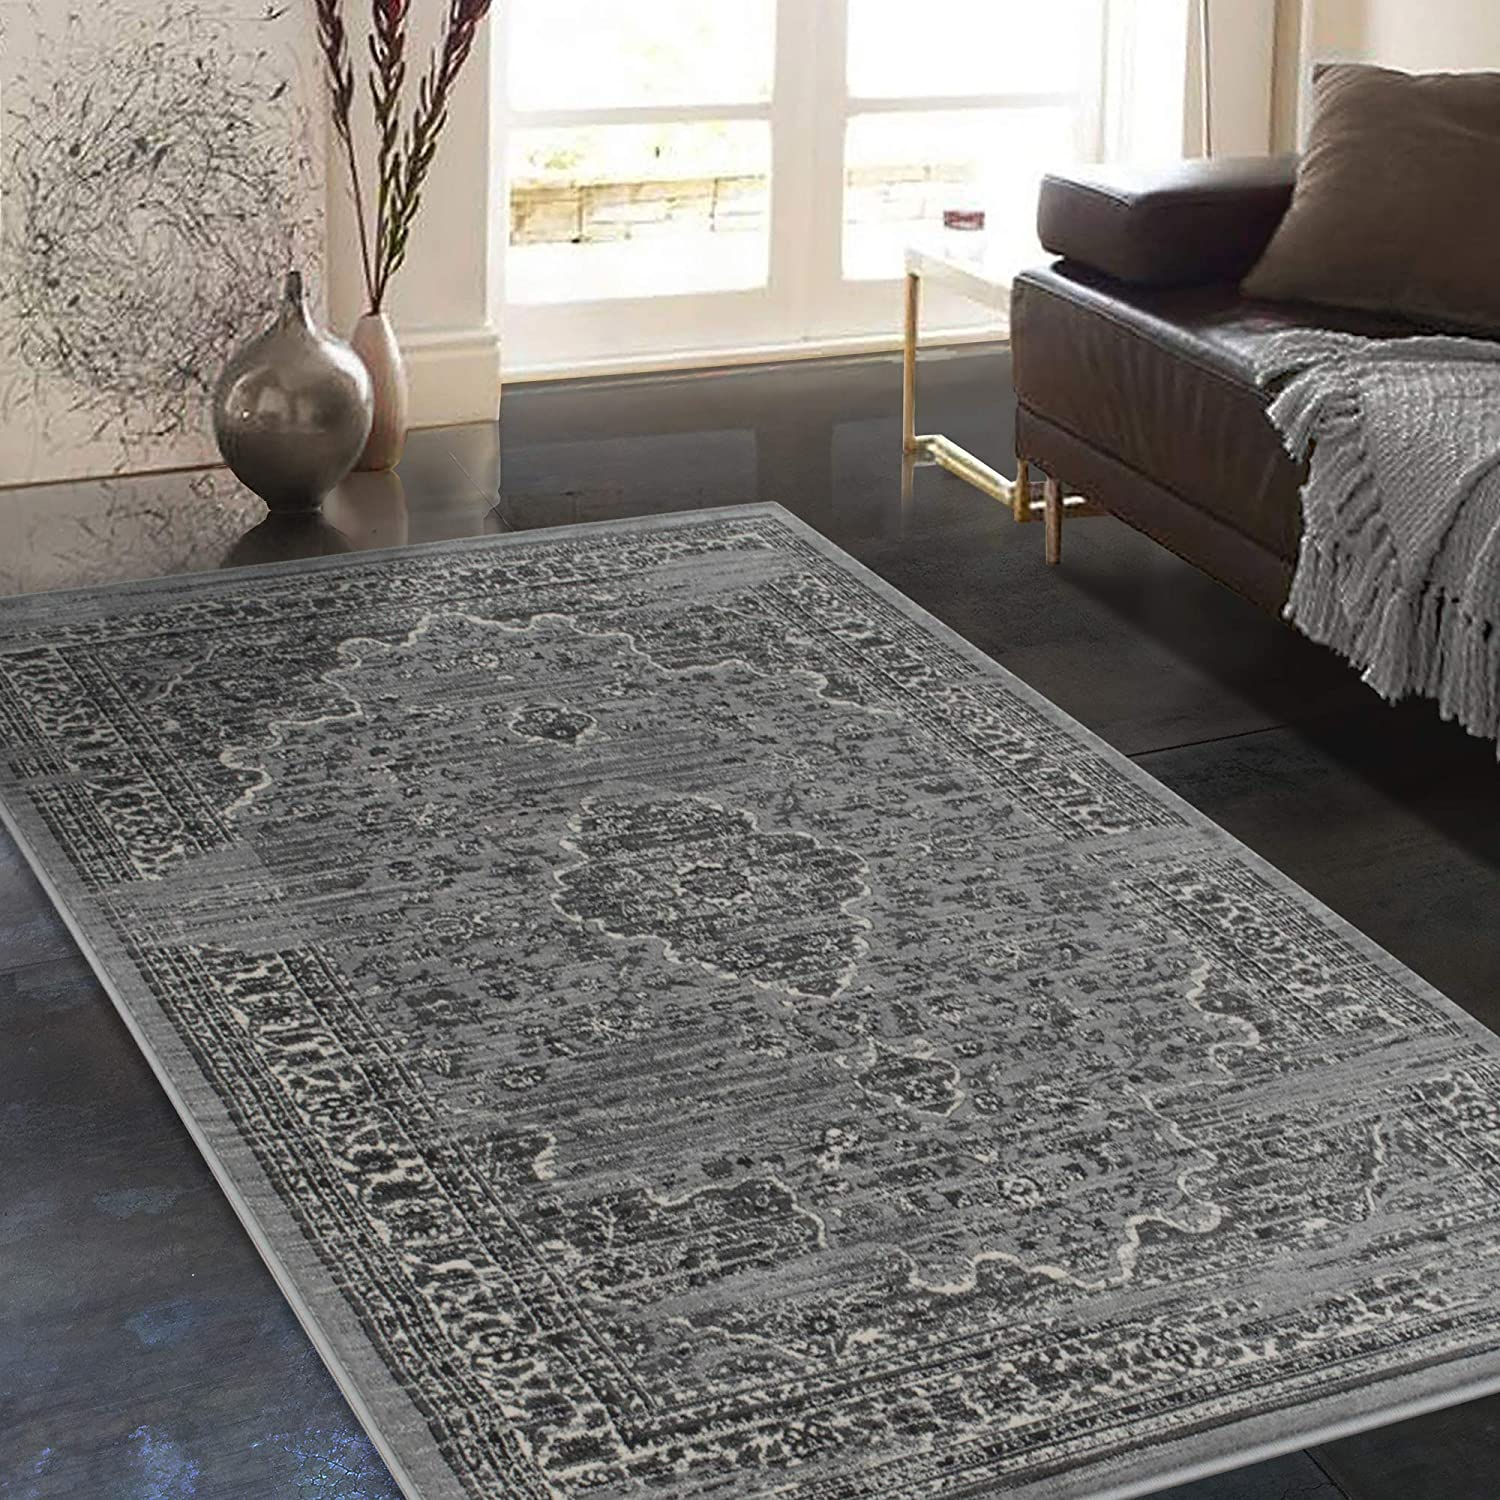 Shipping included Allstar 8x10 Modern Accent Rug Ash 40% OFF Cheap Sale 7' x 6